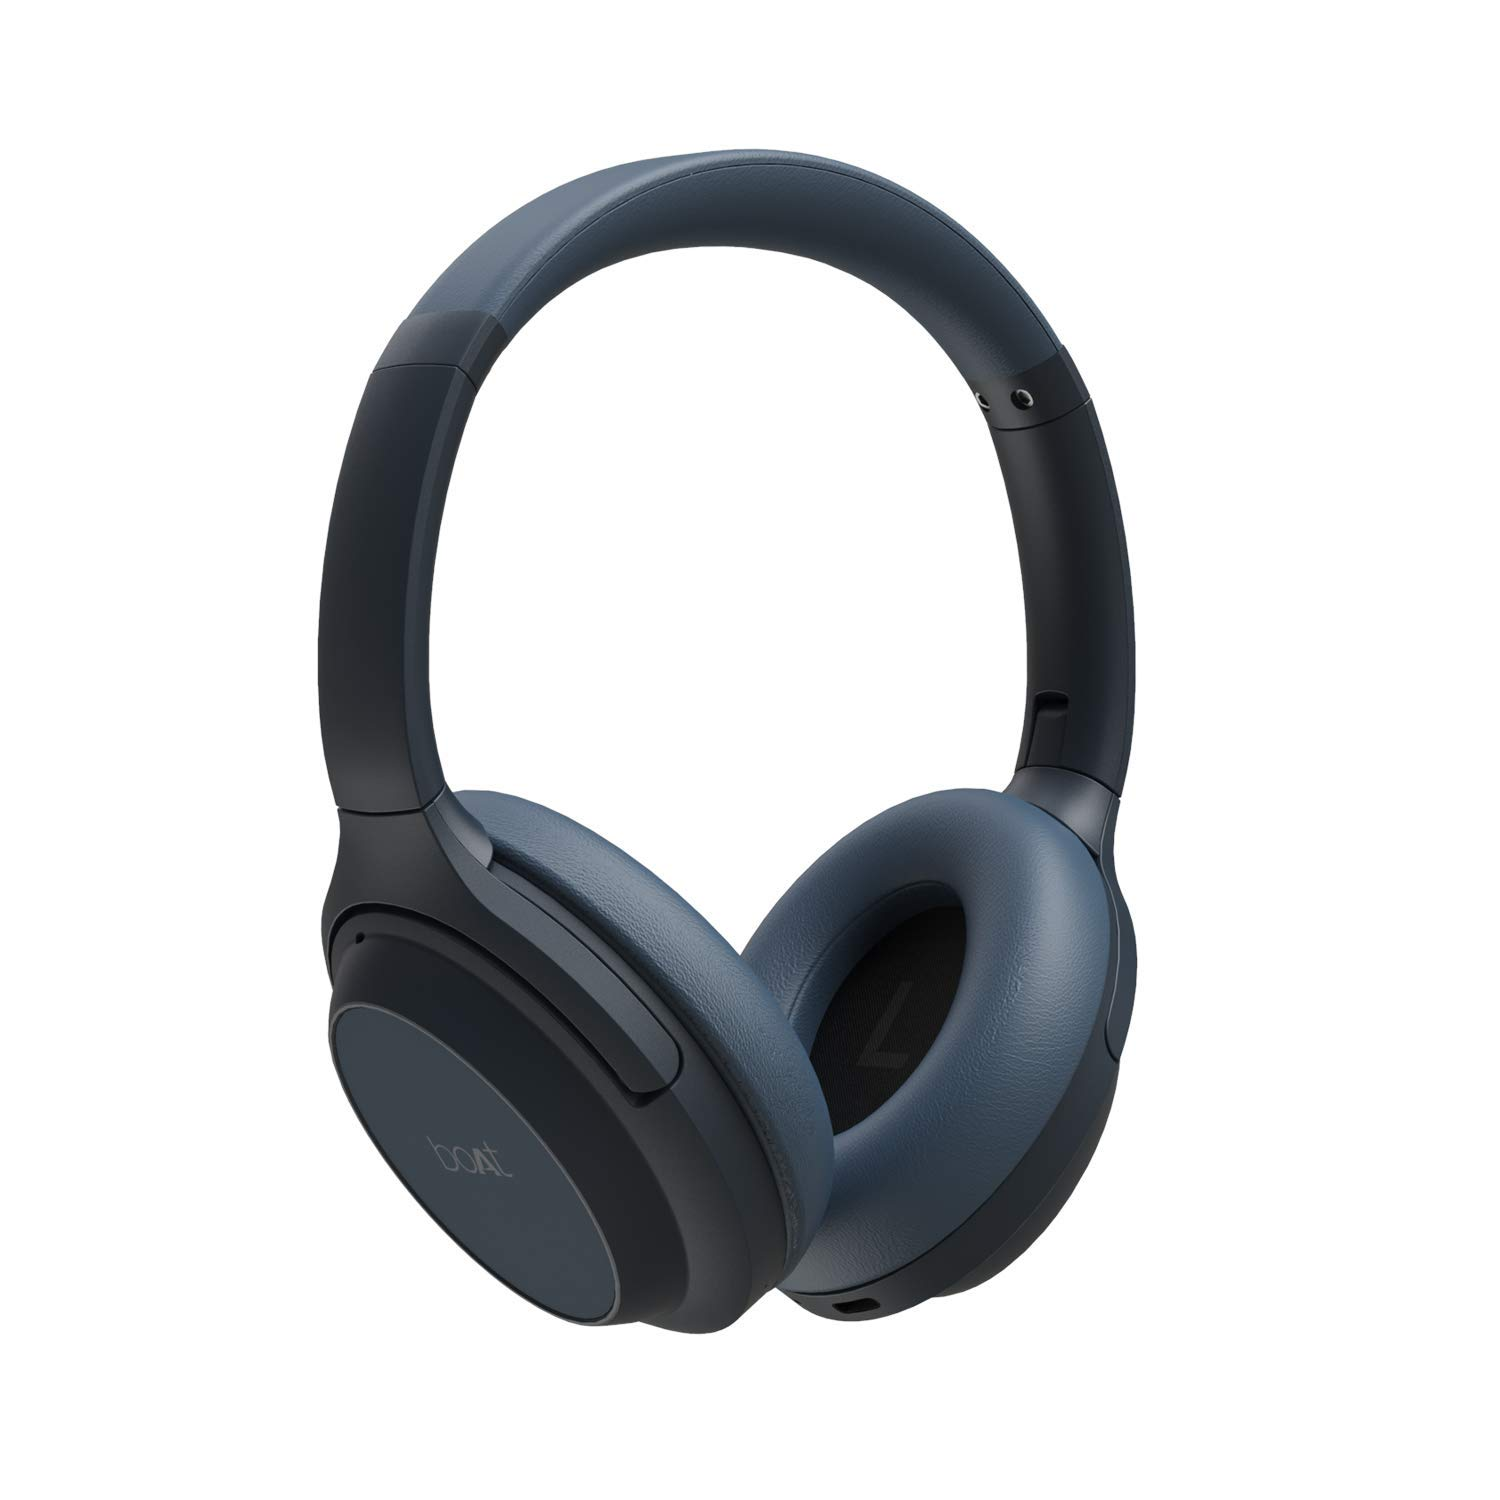 boAt NIRVANAA 1007ANC Active Noise Cancelling Headphones with SmartWave™ Technology, Up to 30H Playback,Ambient Sound Mode,Smart Mute,Type C Interface,Carry Case,One Click Battery Level(Midnight Blue)